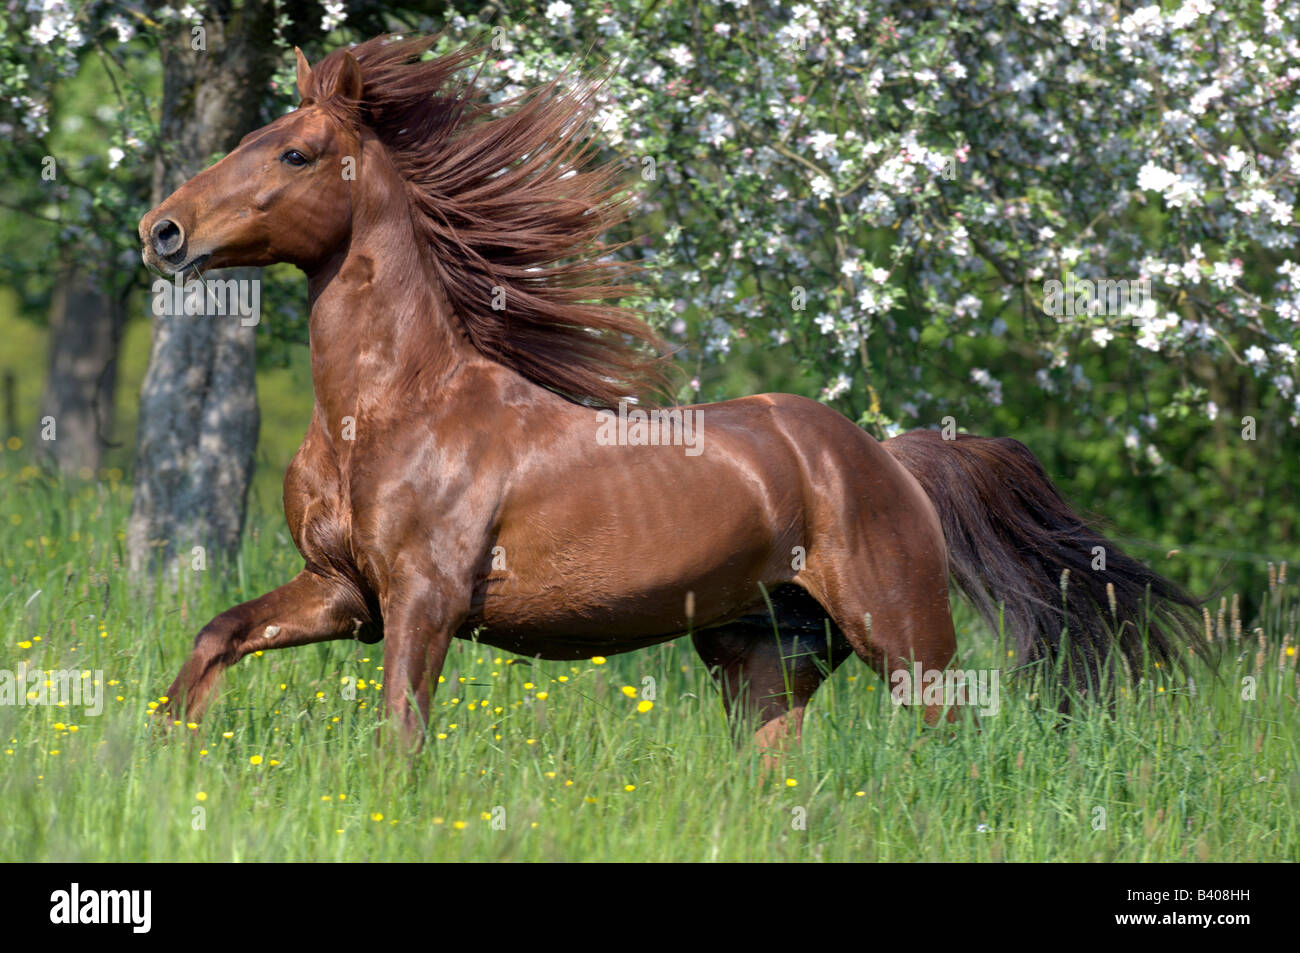 Missouri Fox Trotter (Equus caballus) stallion on a meadow - Stock Image